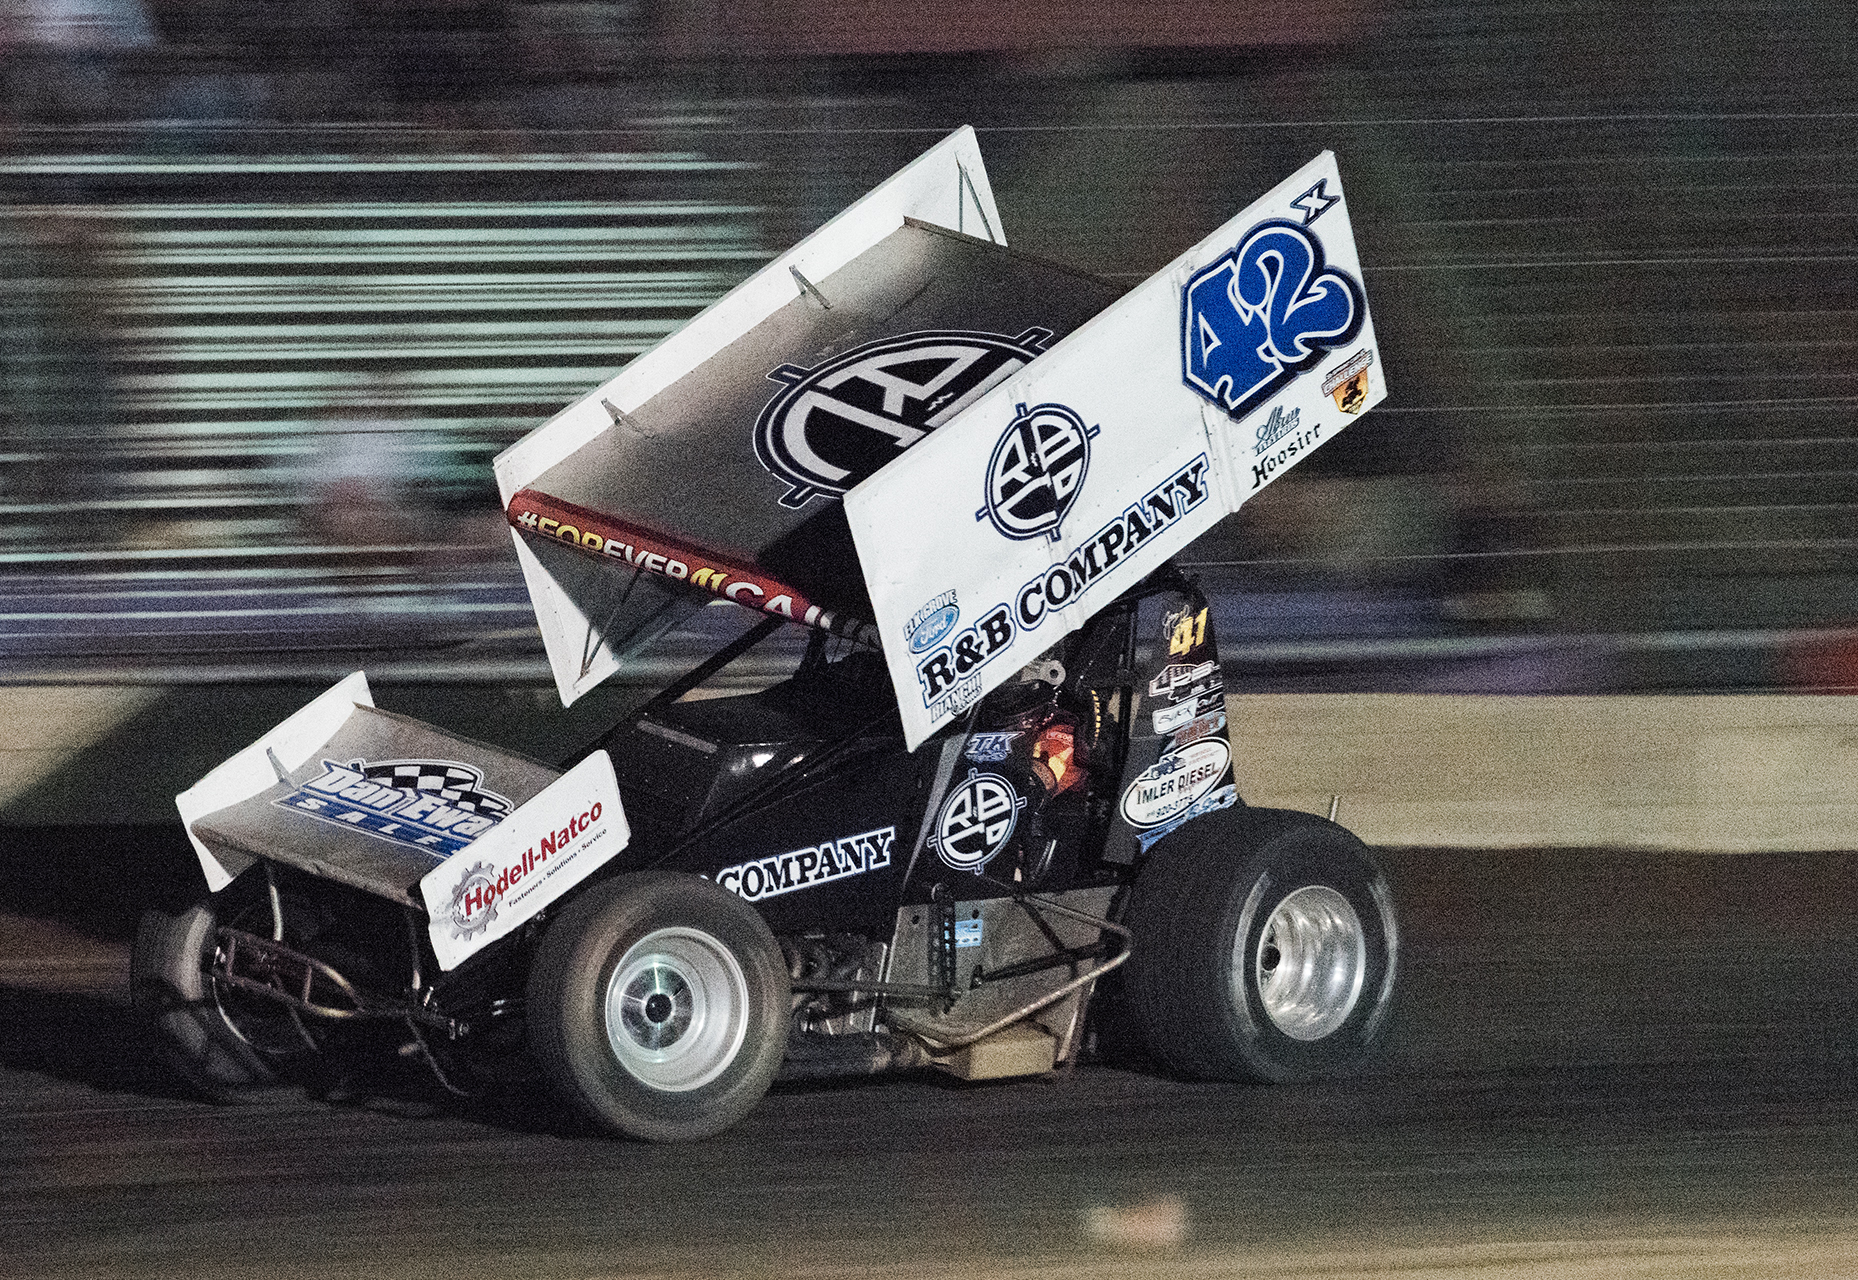 Tim leading the main event, driving the Josh Bates 42x at Stockton, 2018.